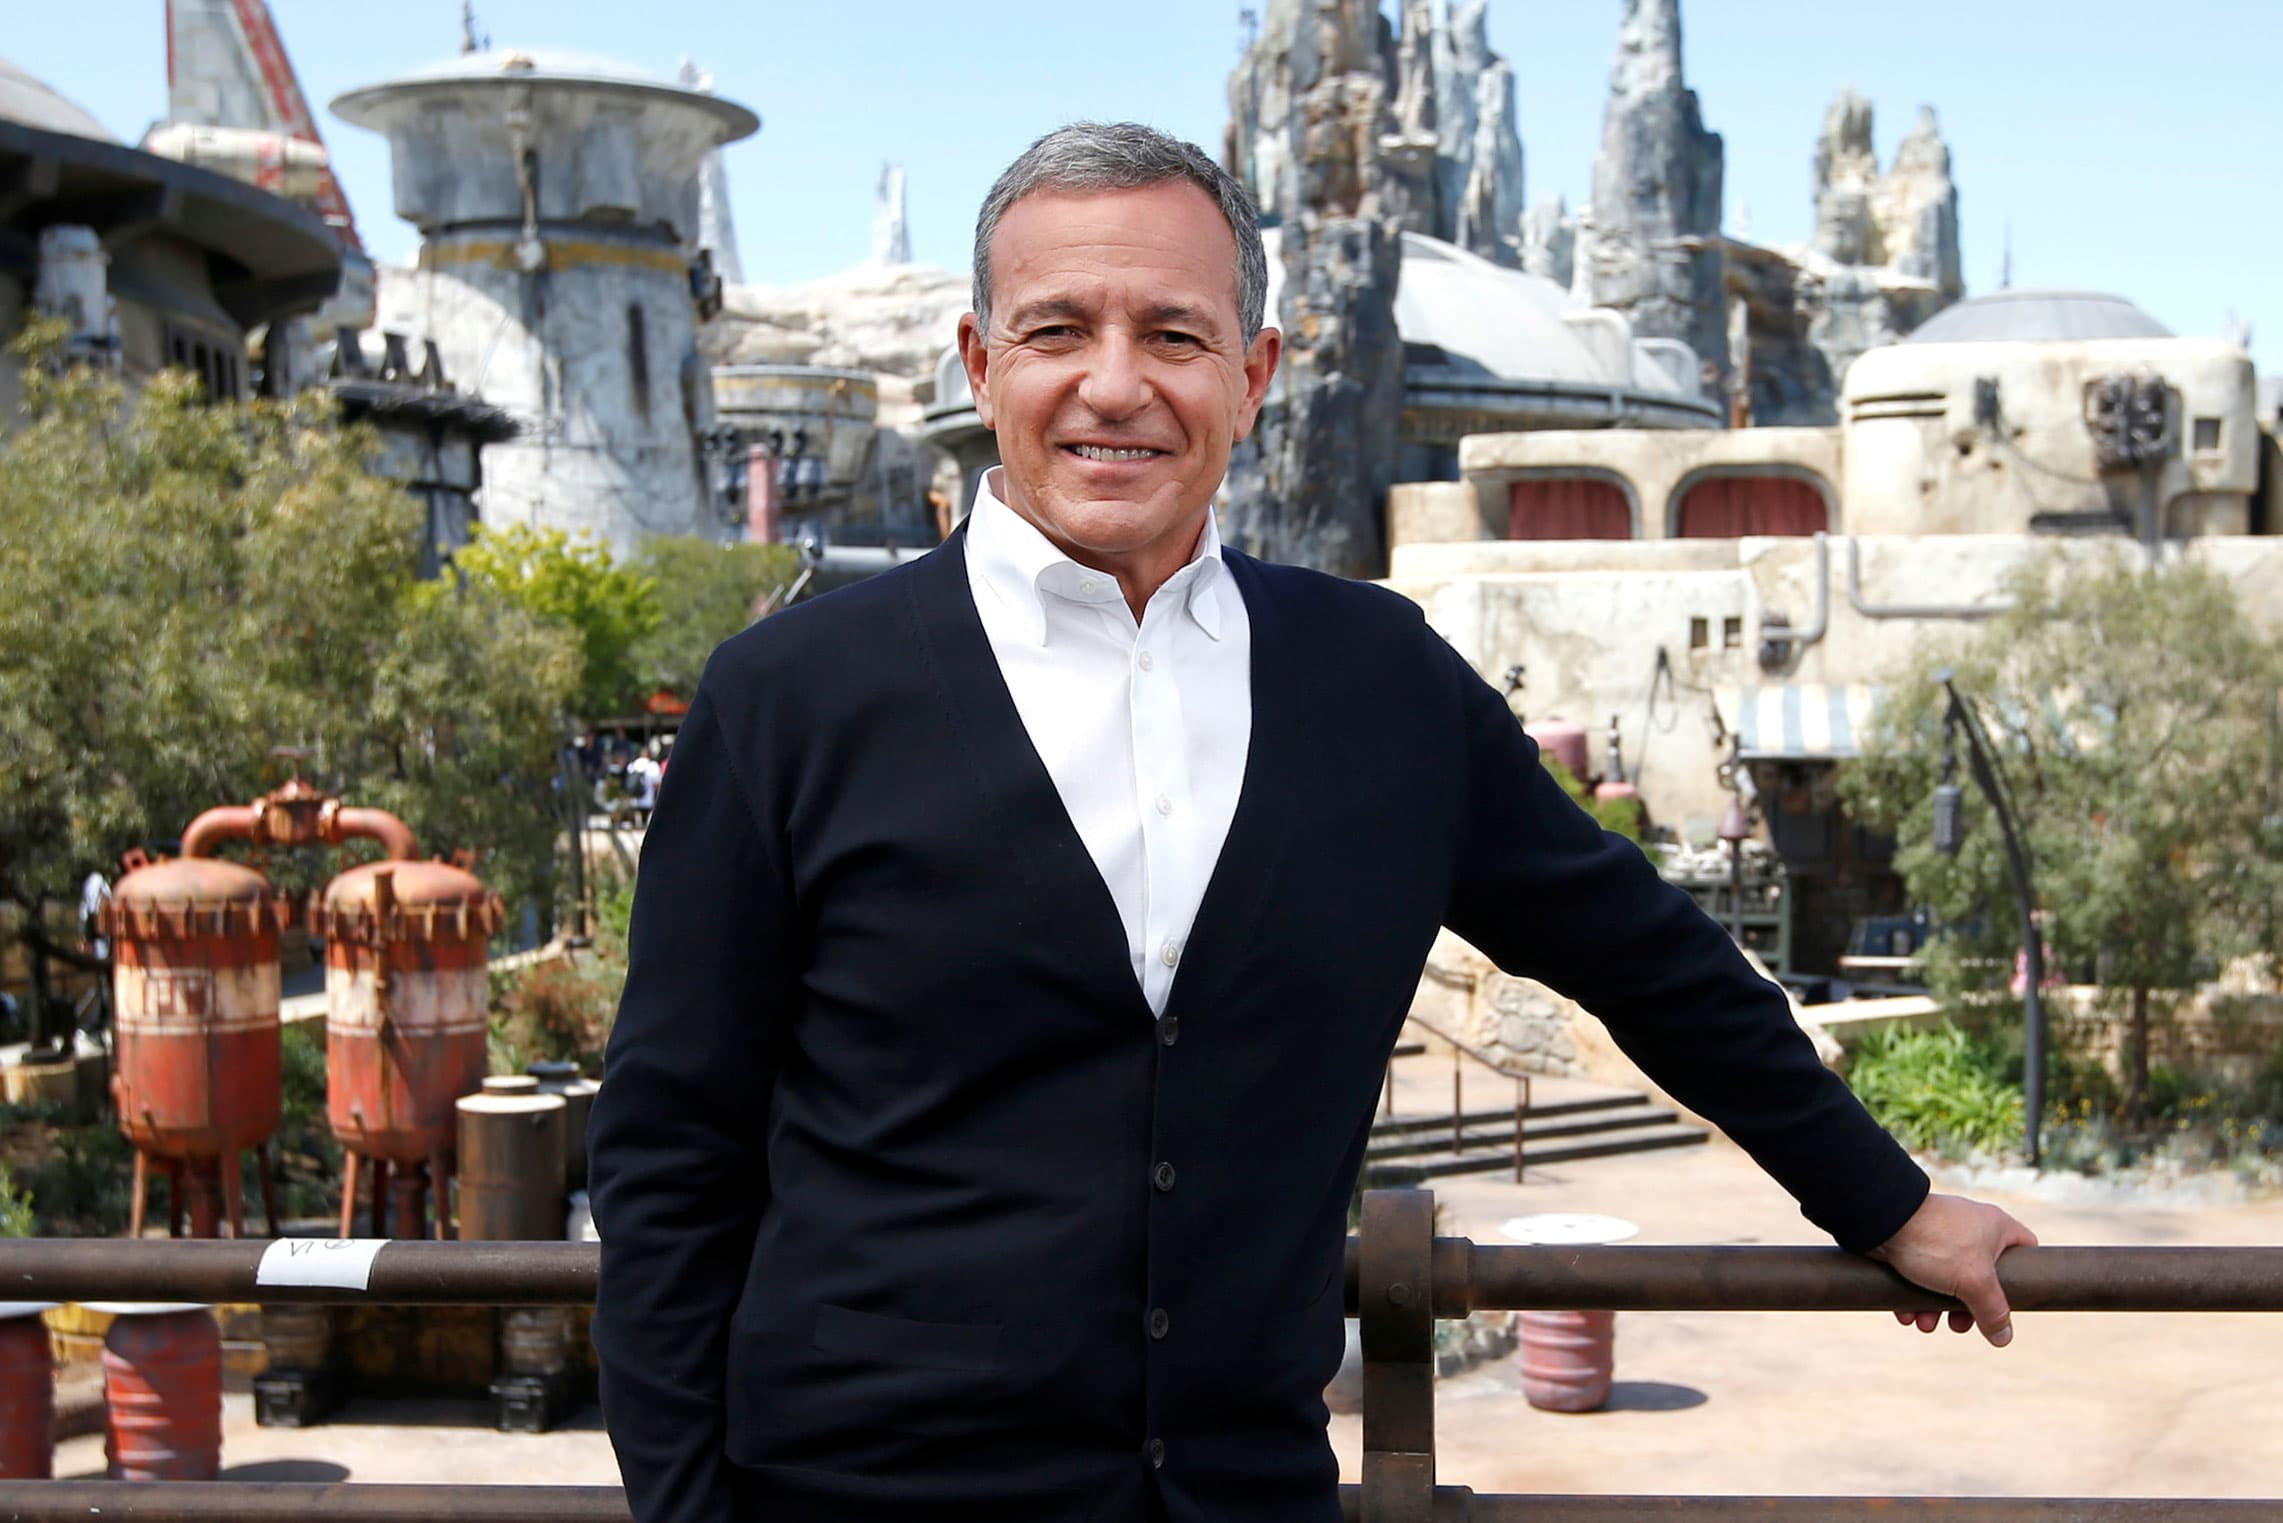 Disney CEO Bob Iger says it's a coincidence the Disney+ bundle costs the same as a Netflix subscription